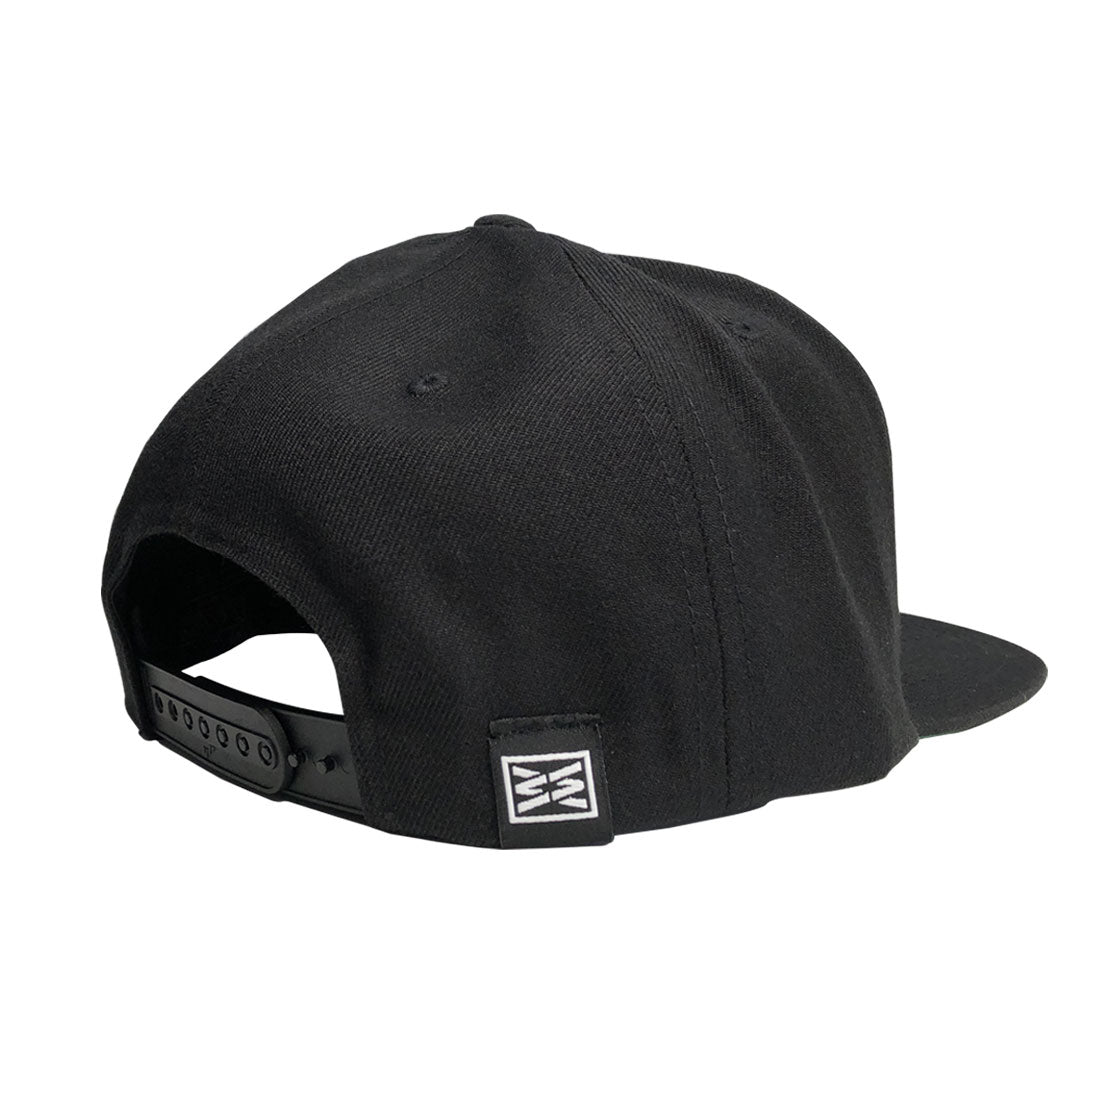 RIZNWILD | Black snap back hat with private woven label sewn on